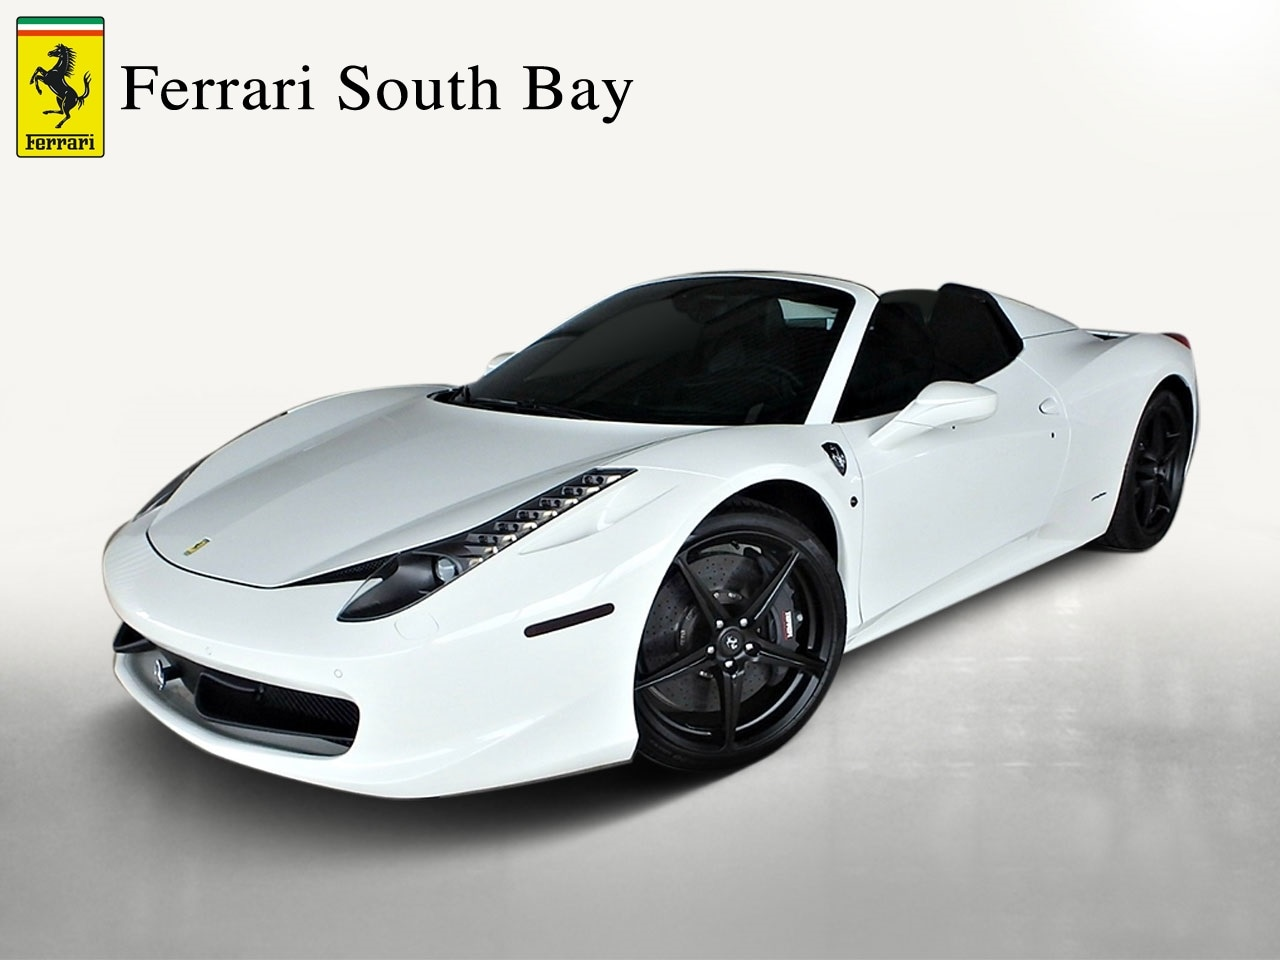 Certified Pre-Owned 2015 Ferrari 458 Spider Convertible For Sale Beverly Hills, California